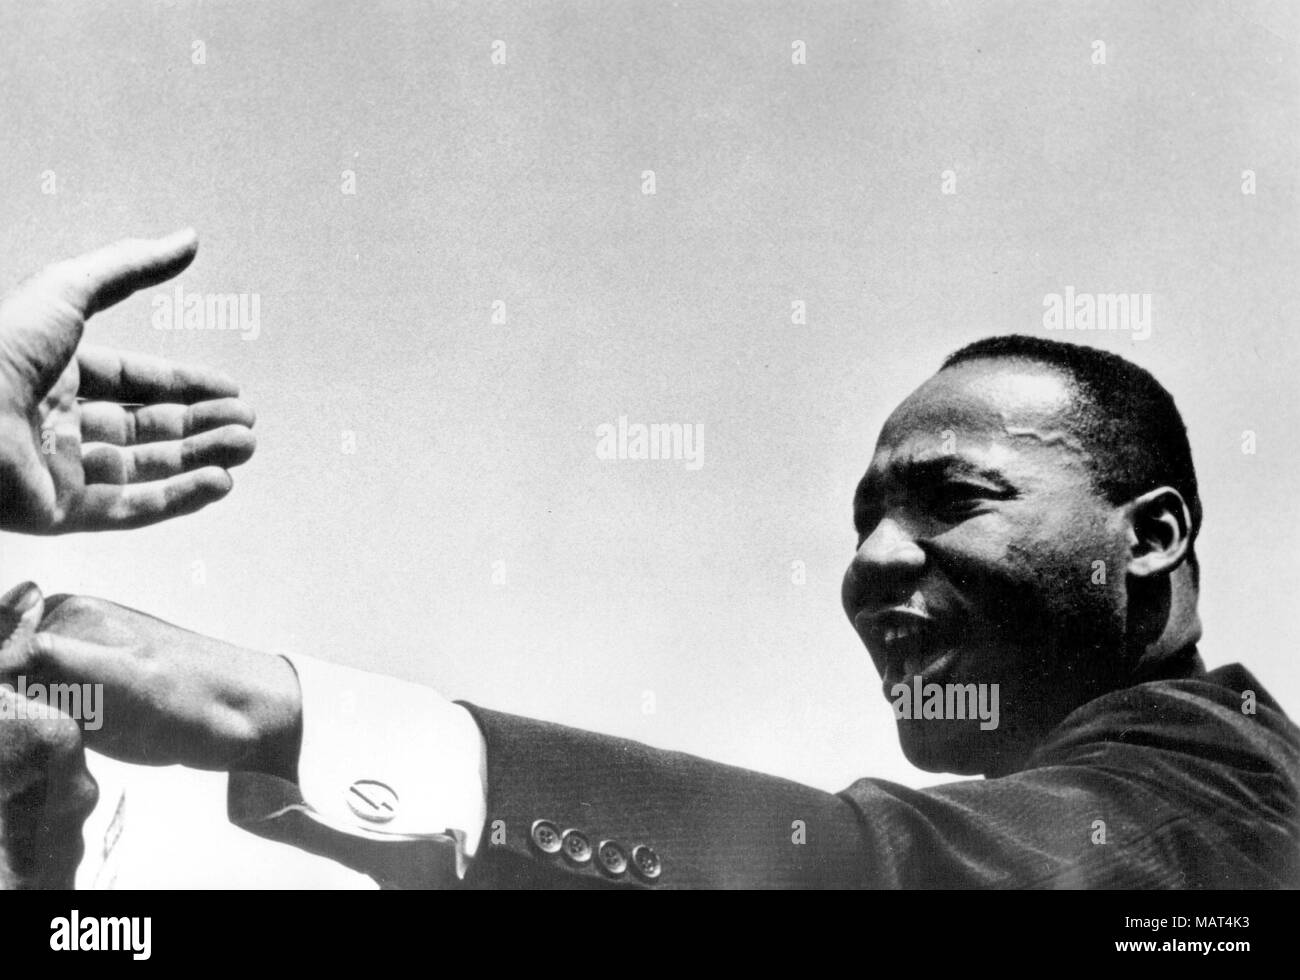 File. 4th Apr, 2018. Reverend MARTIN LUTHER KING JR. was fatally shot by J. Earl Ray at 6:01 p.m., April 4, 1968, as he stood on second-floor balcony of Lorraine Hotel in Memphis Tennessee. Pictured: Aug. 12, 1963 - Washington, DC, U.S. - Reverend Martin Luther King, Jr. was a famous leader of the African American civil rights movement. King was tragically assassinated on April 4, 1968 at the Lorraine Motel. PICTURED: King shaking hands during 'The March on Washington for Jobs and Freedom.' (Credit Image: © Keystone Press Agency/Keystone USA via ZUMAPRESS.com) Stock Photo